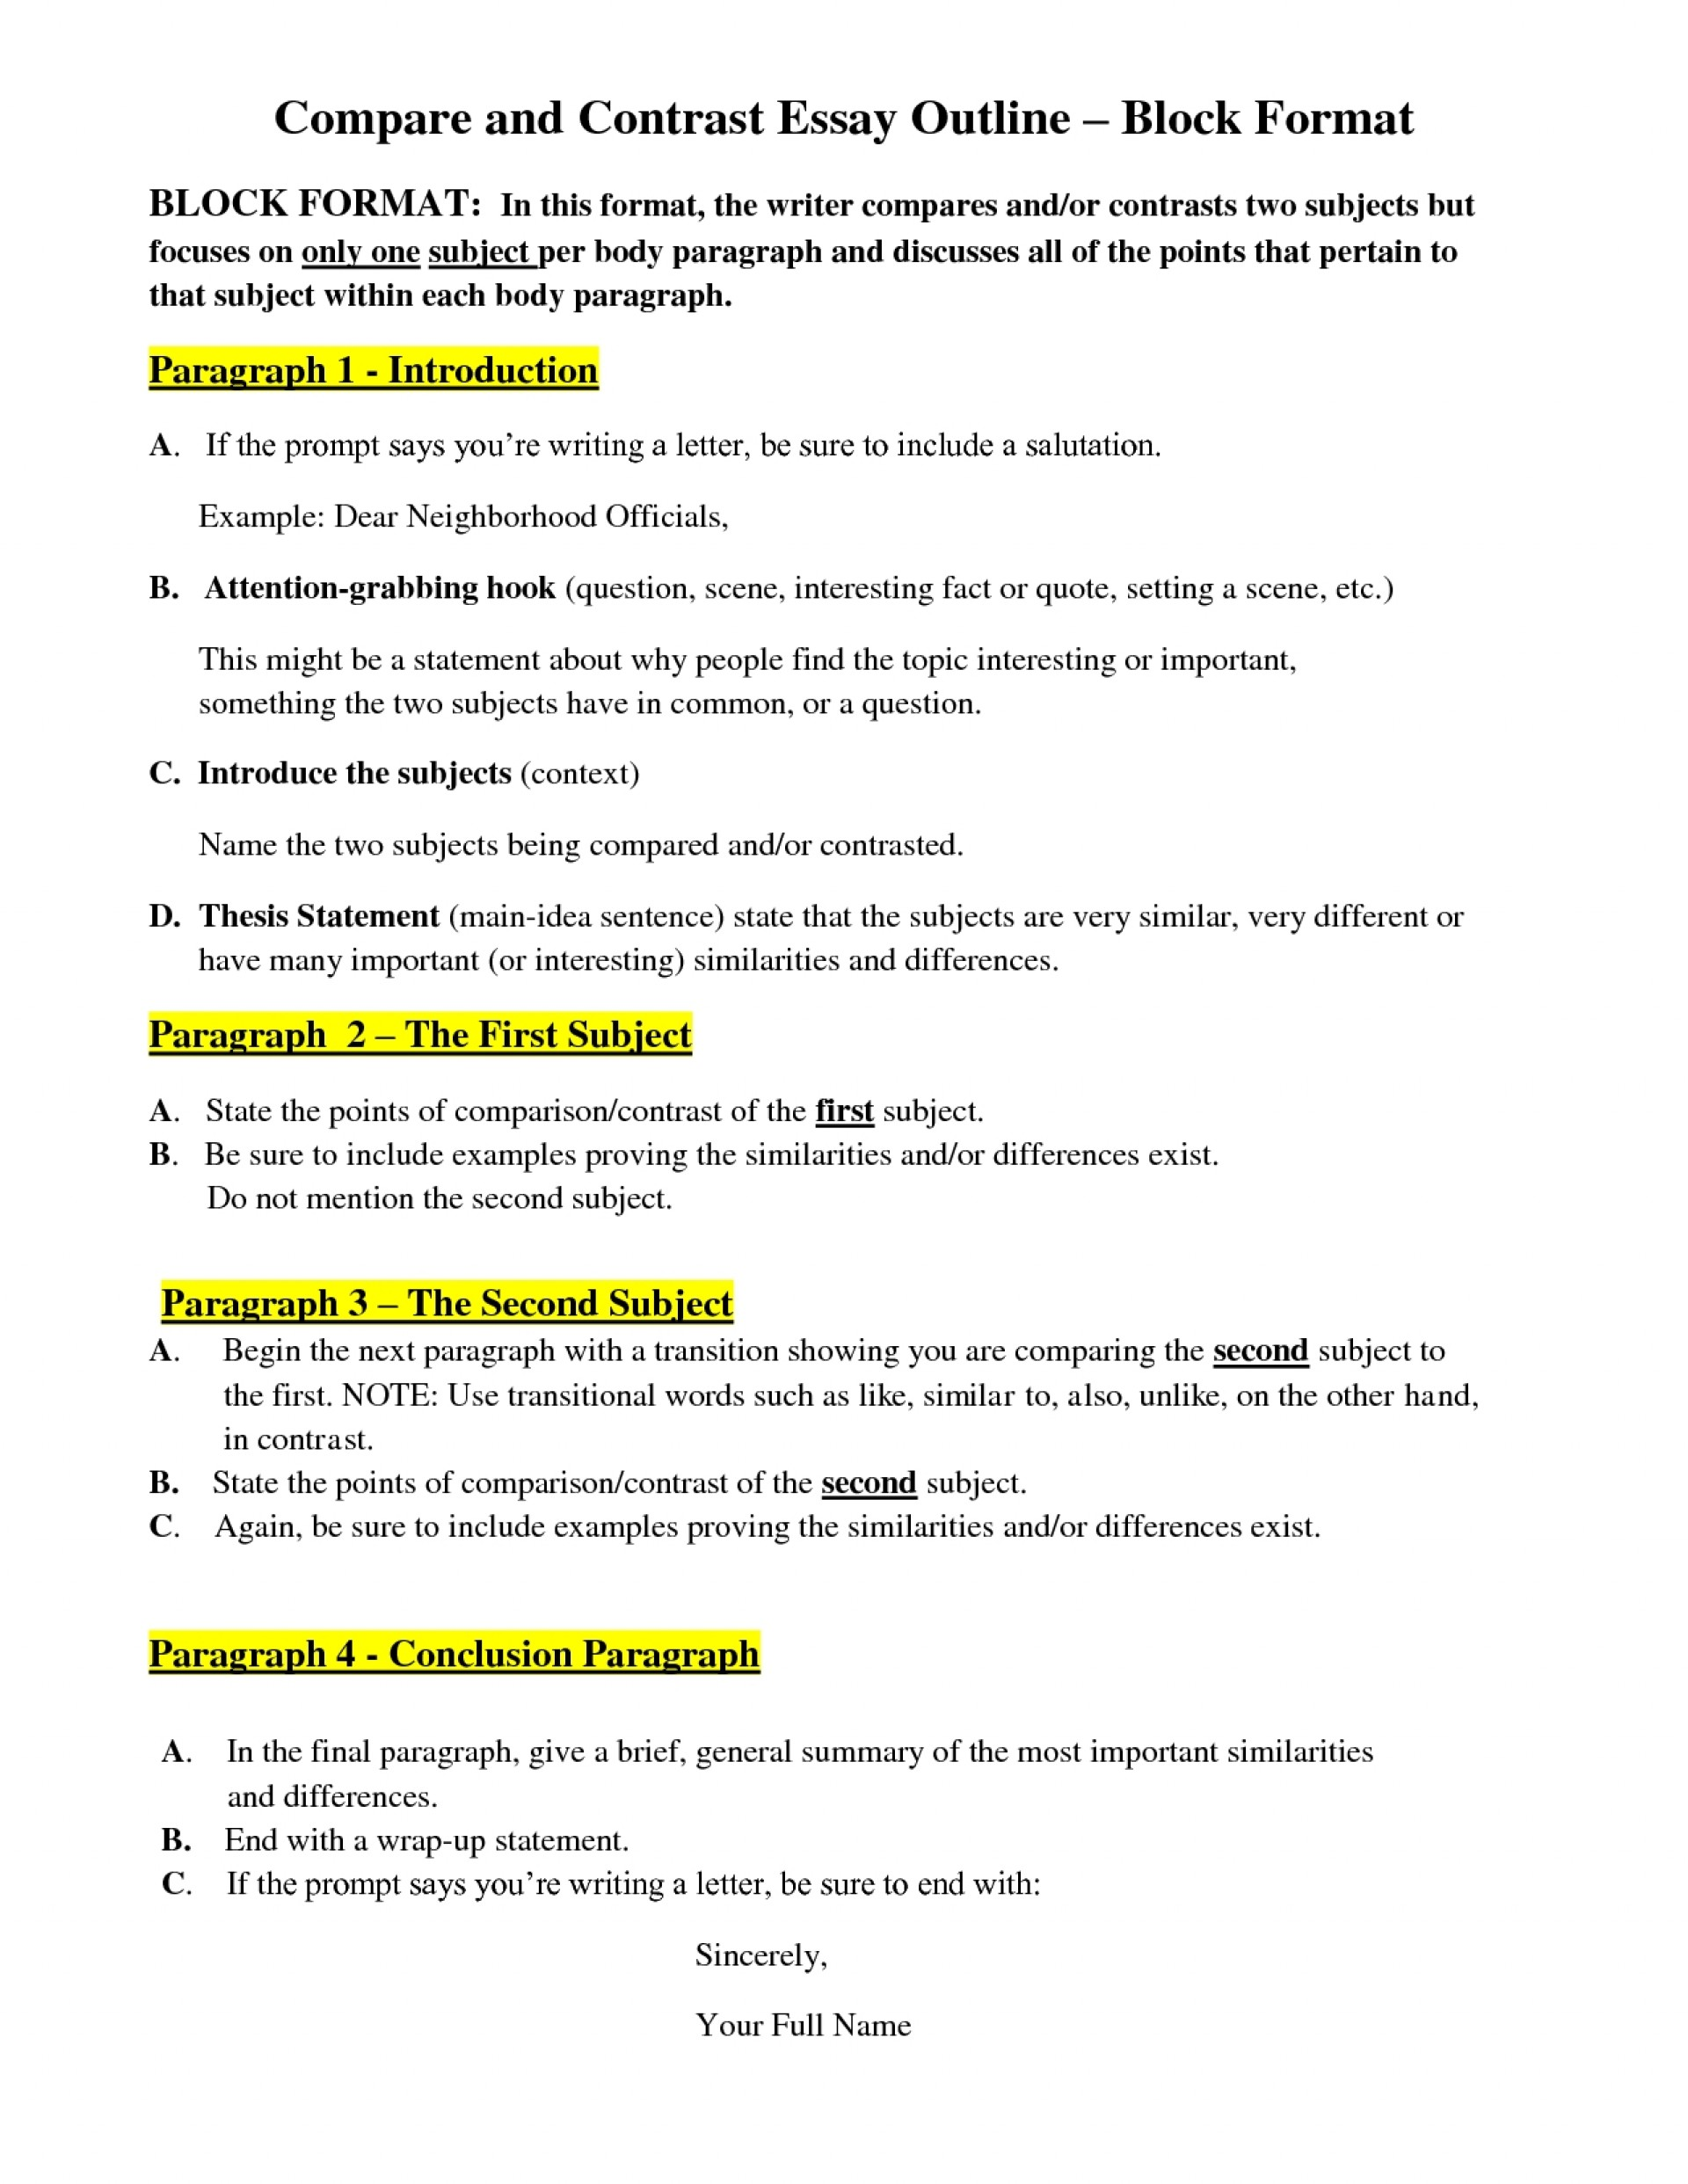 004 Essay Template Compare Contrast Outline Example Maxresdefault Creating Project Plan For Your Youtube How To An With Good Cover Letter Samples Point Wonderful By And 1920